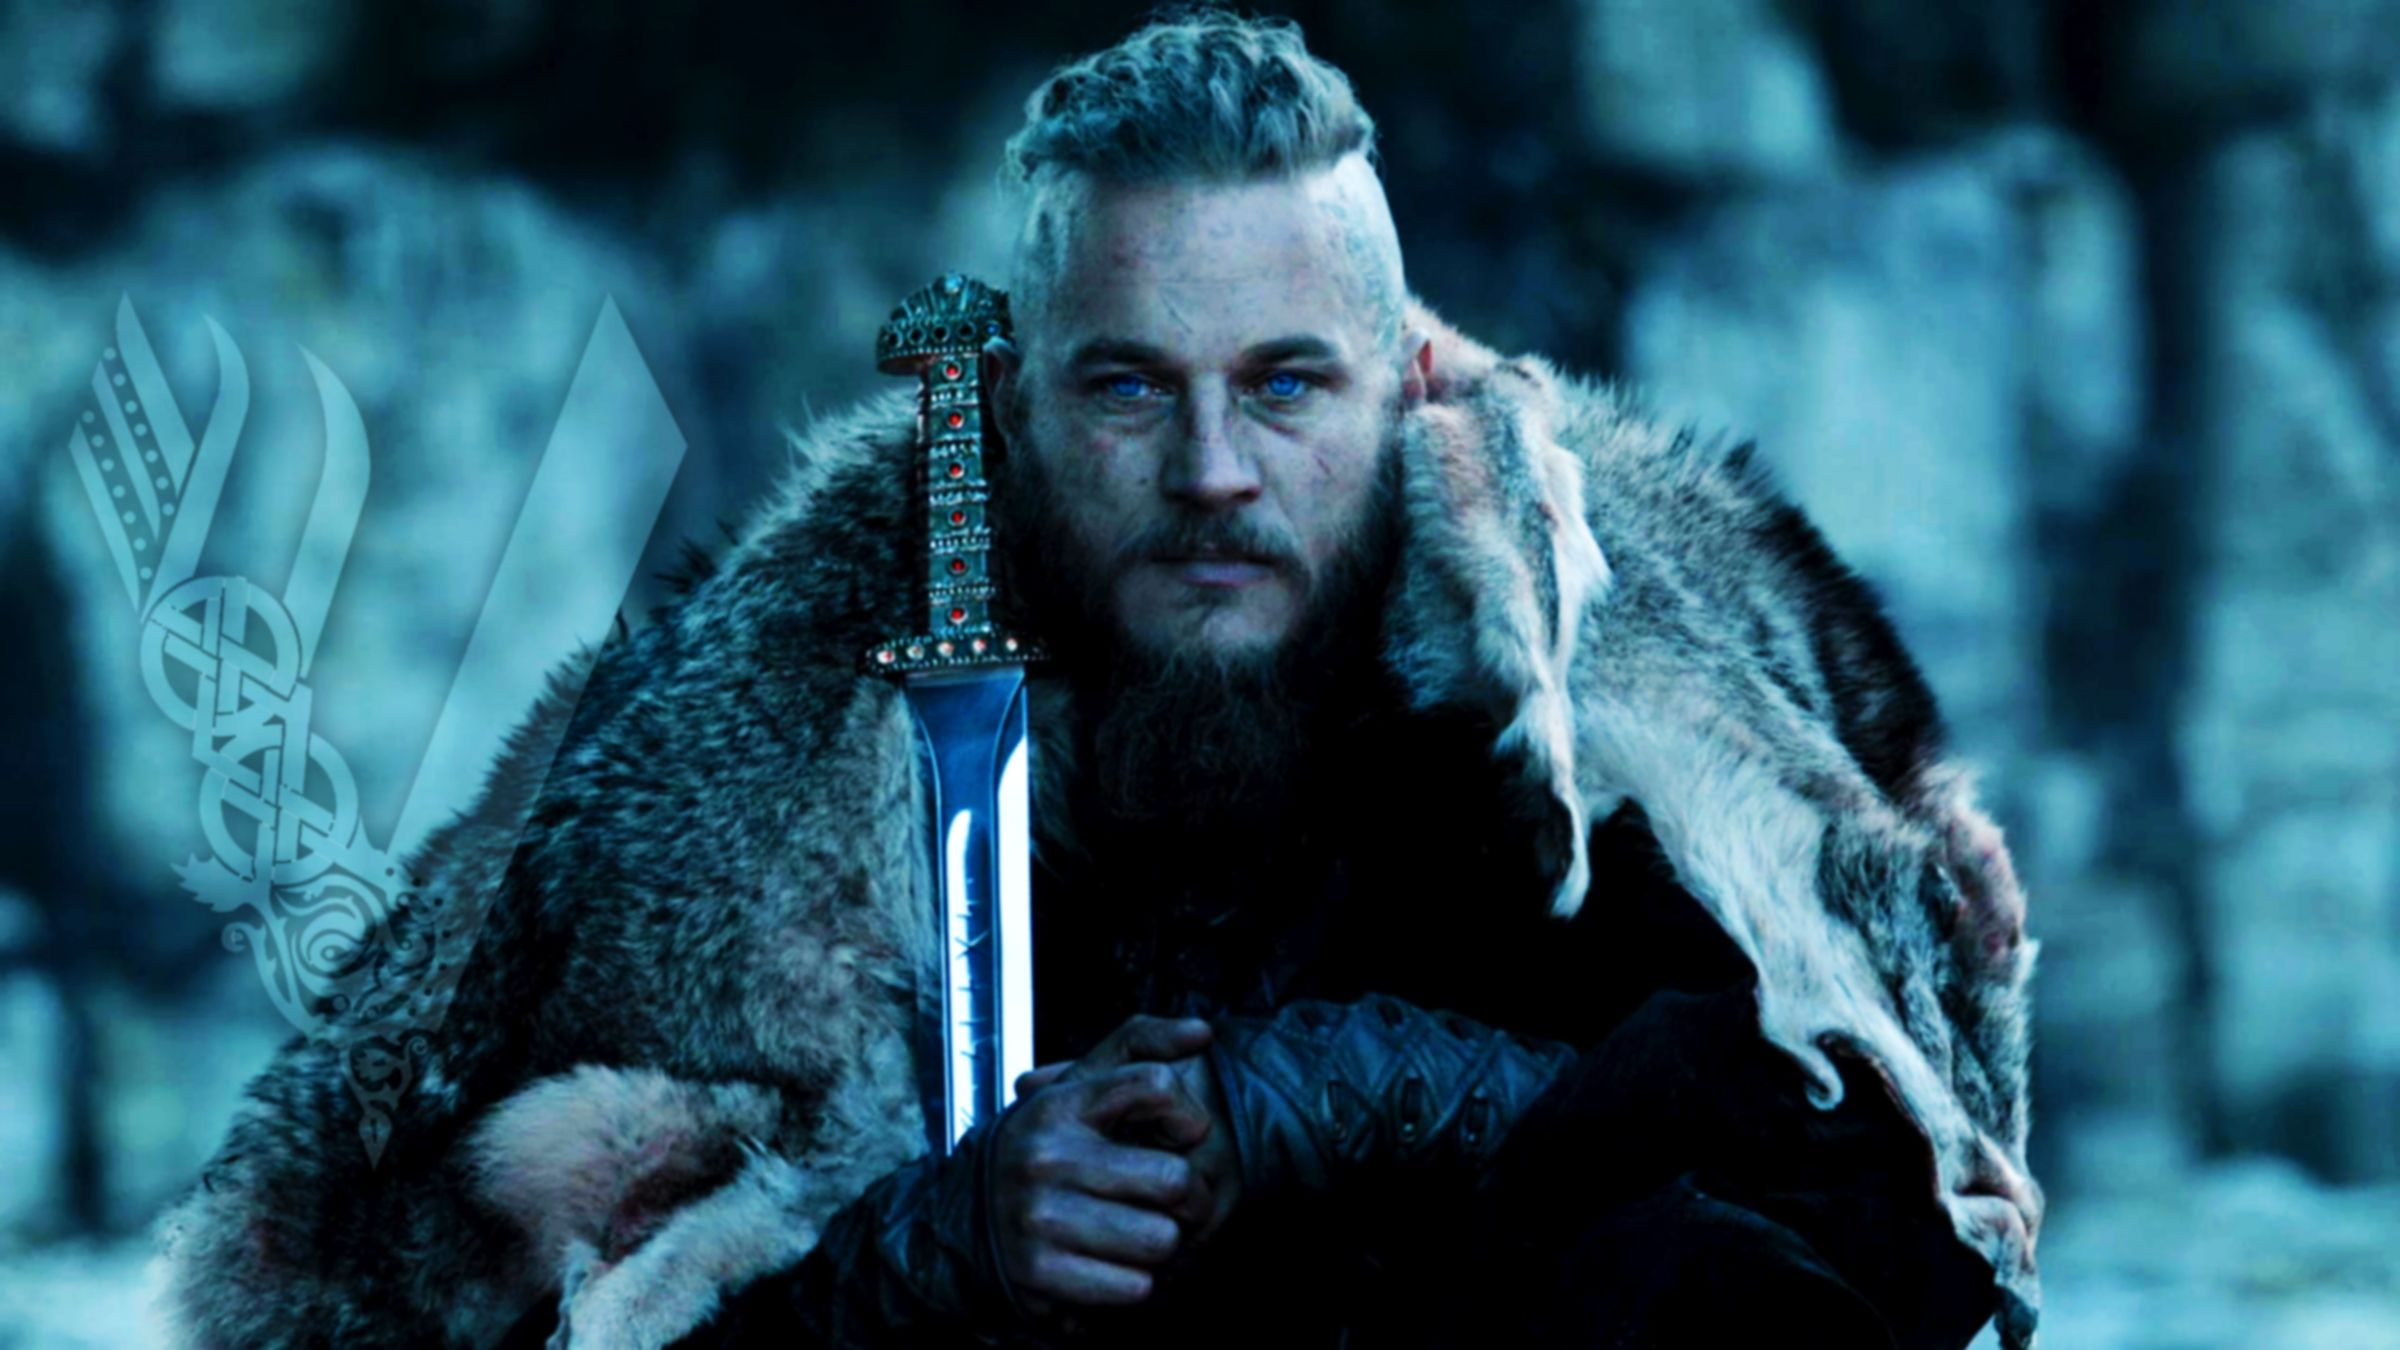 Ragnar Lothbrok Vikings Hd Wallpaper In 2019 Vikings